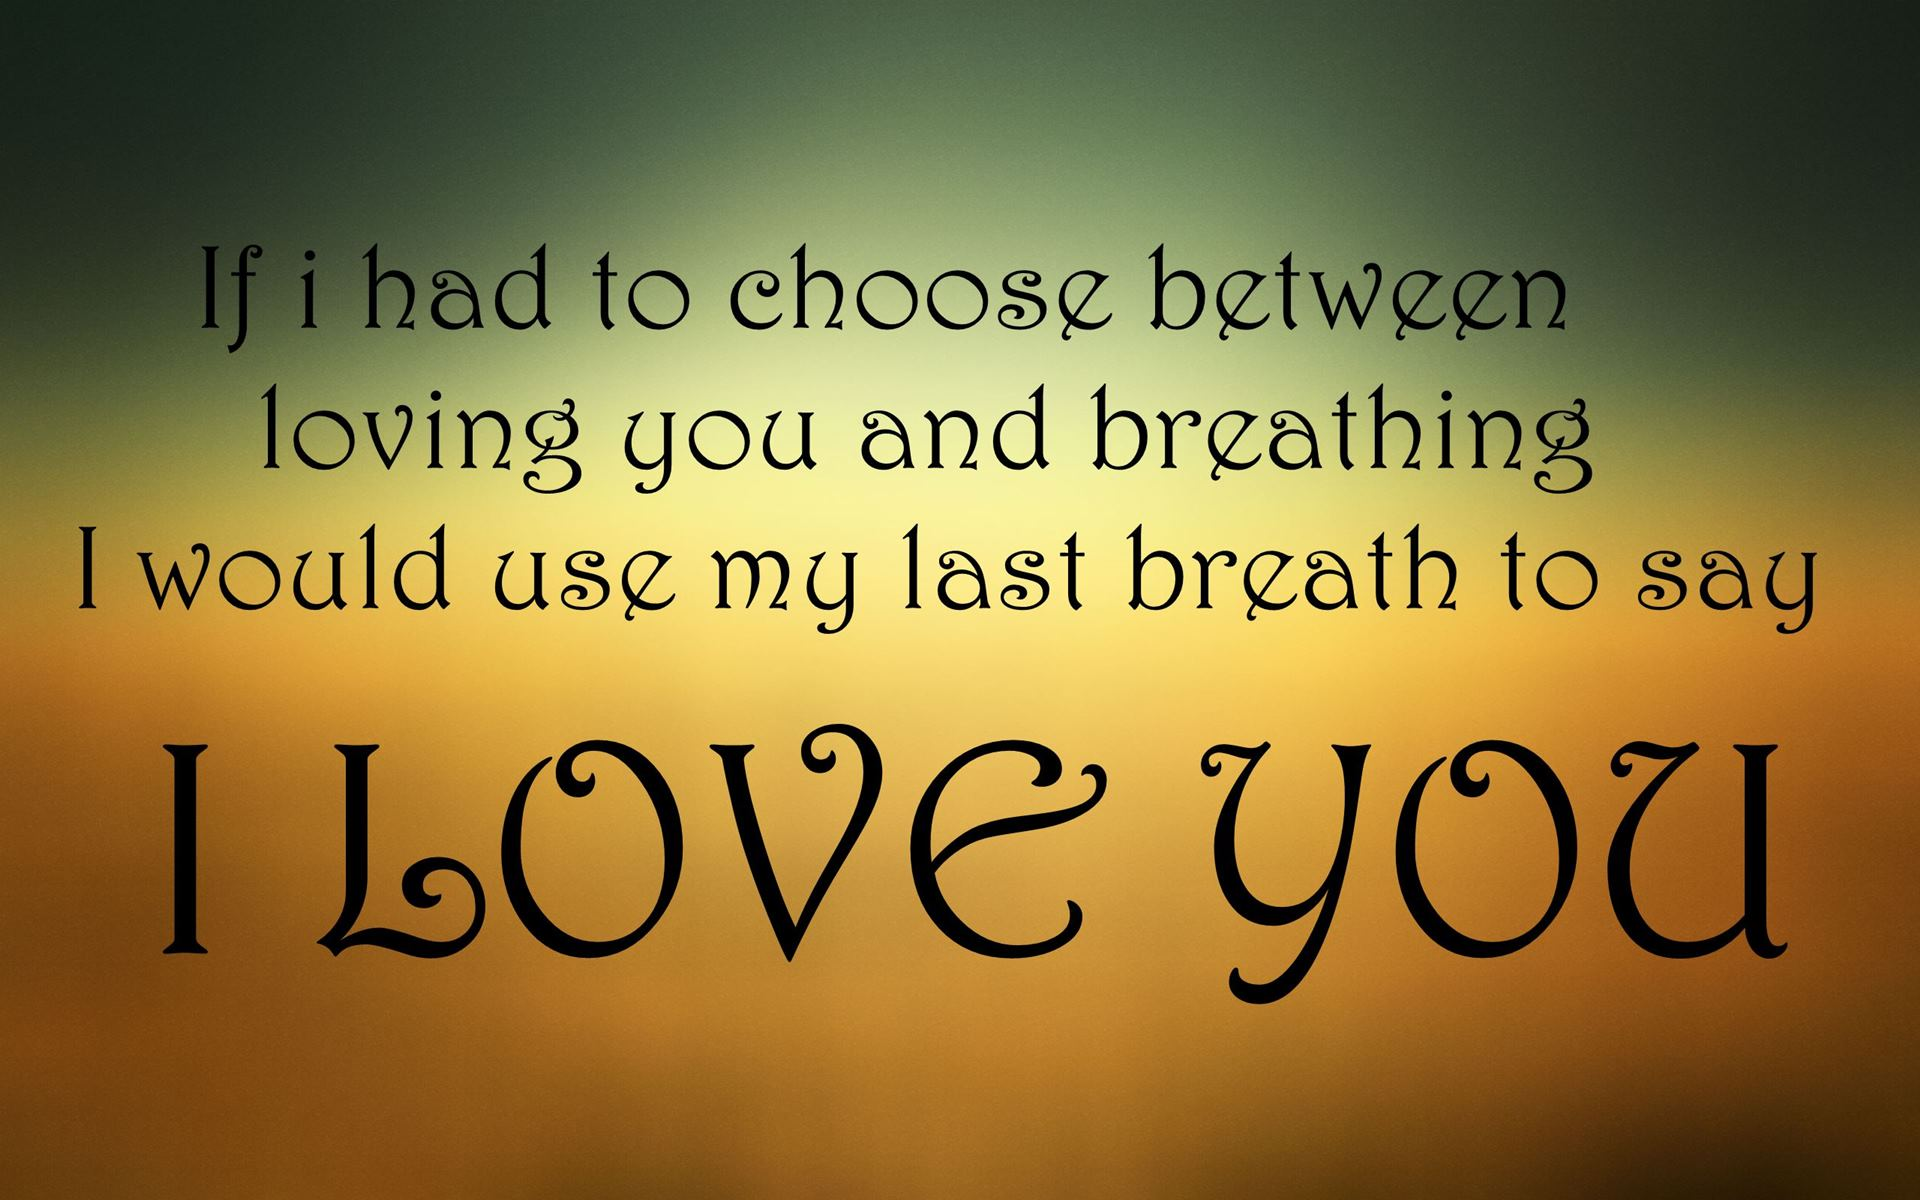 Free Desktop Wallpaper With Love Quotes : Quotes About Love Wallpapers, Pictures, Images